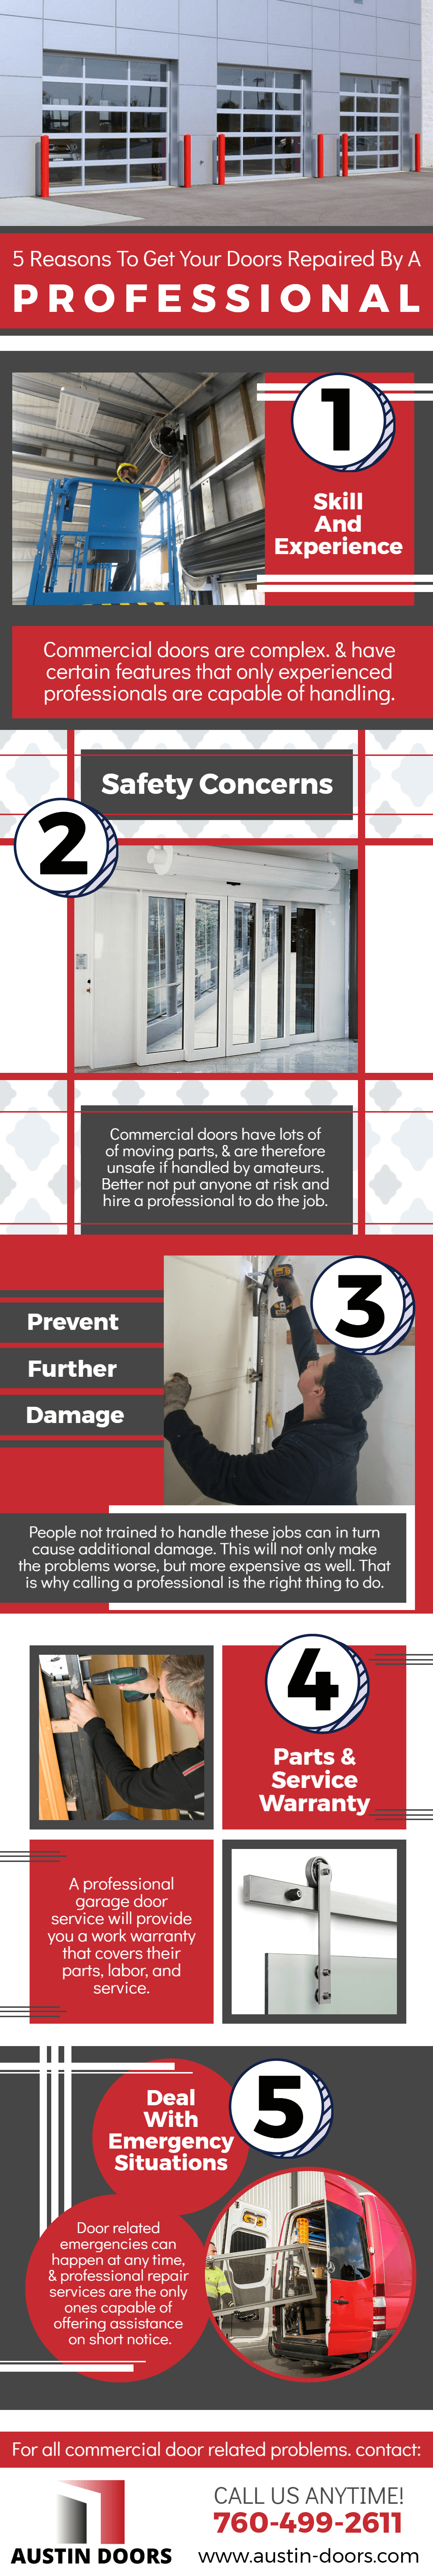 5 Reasons To Get Your Doors Repaired By A Professional